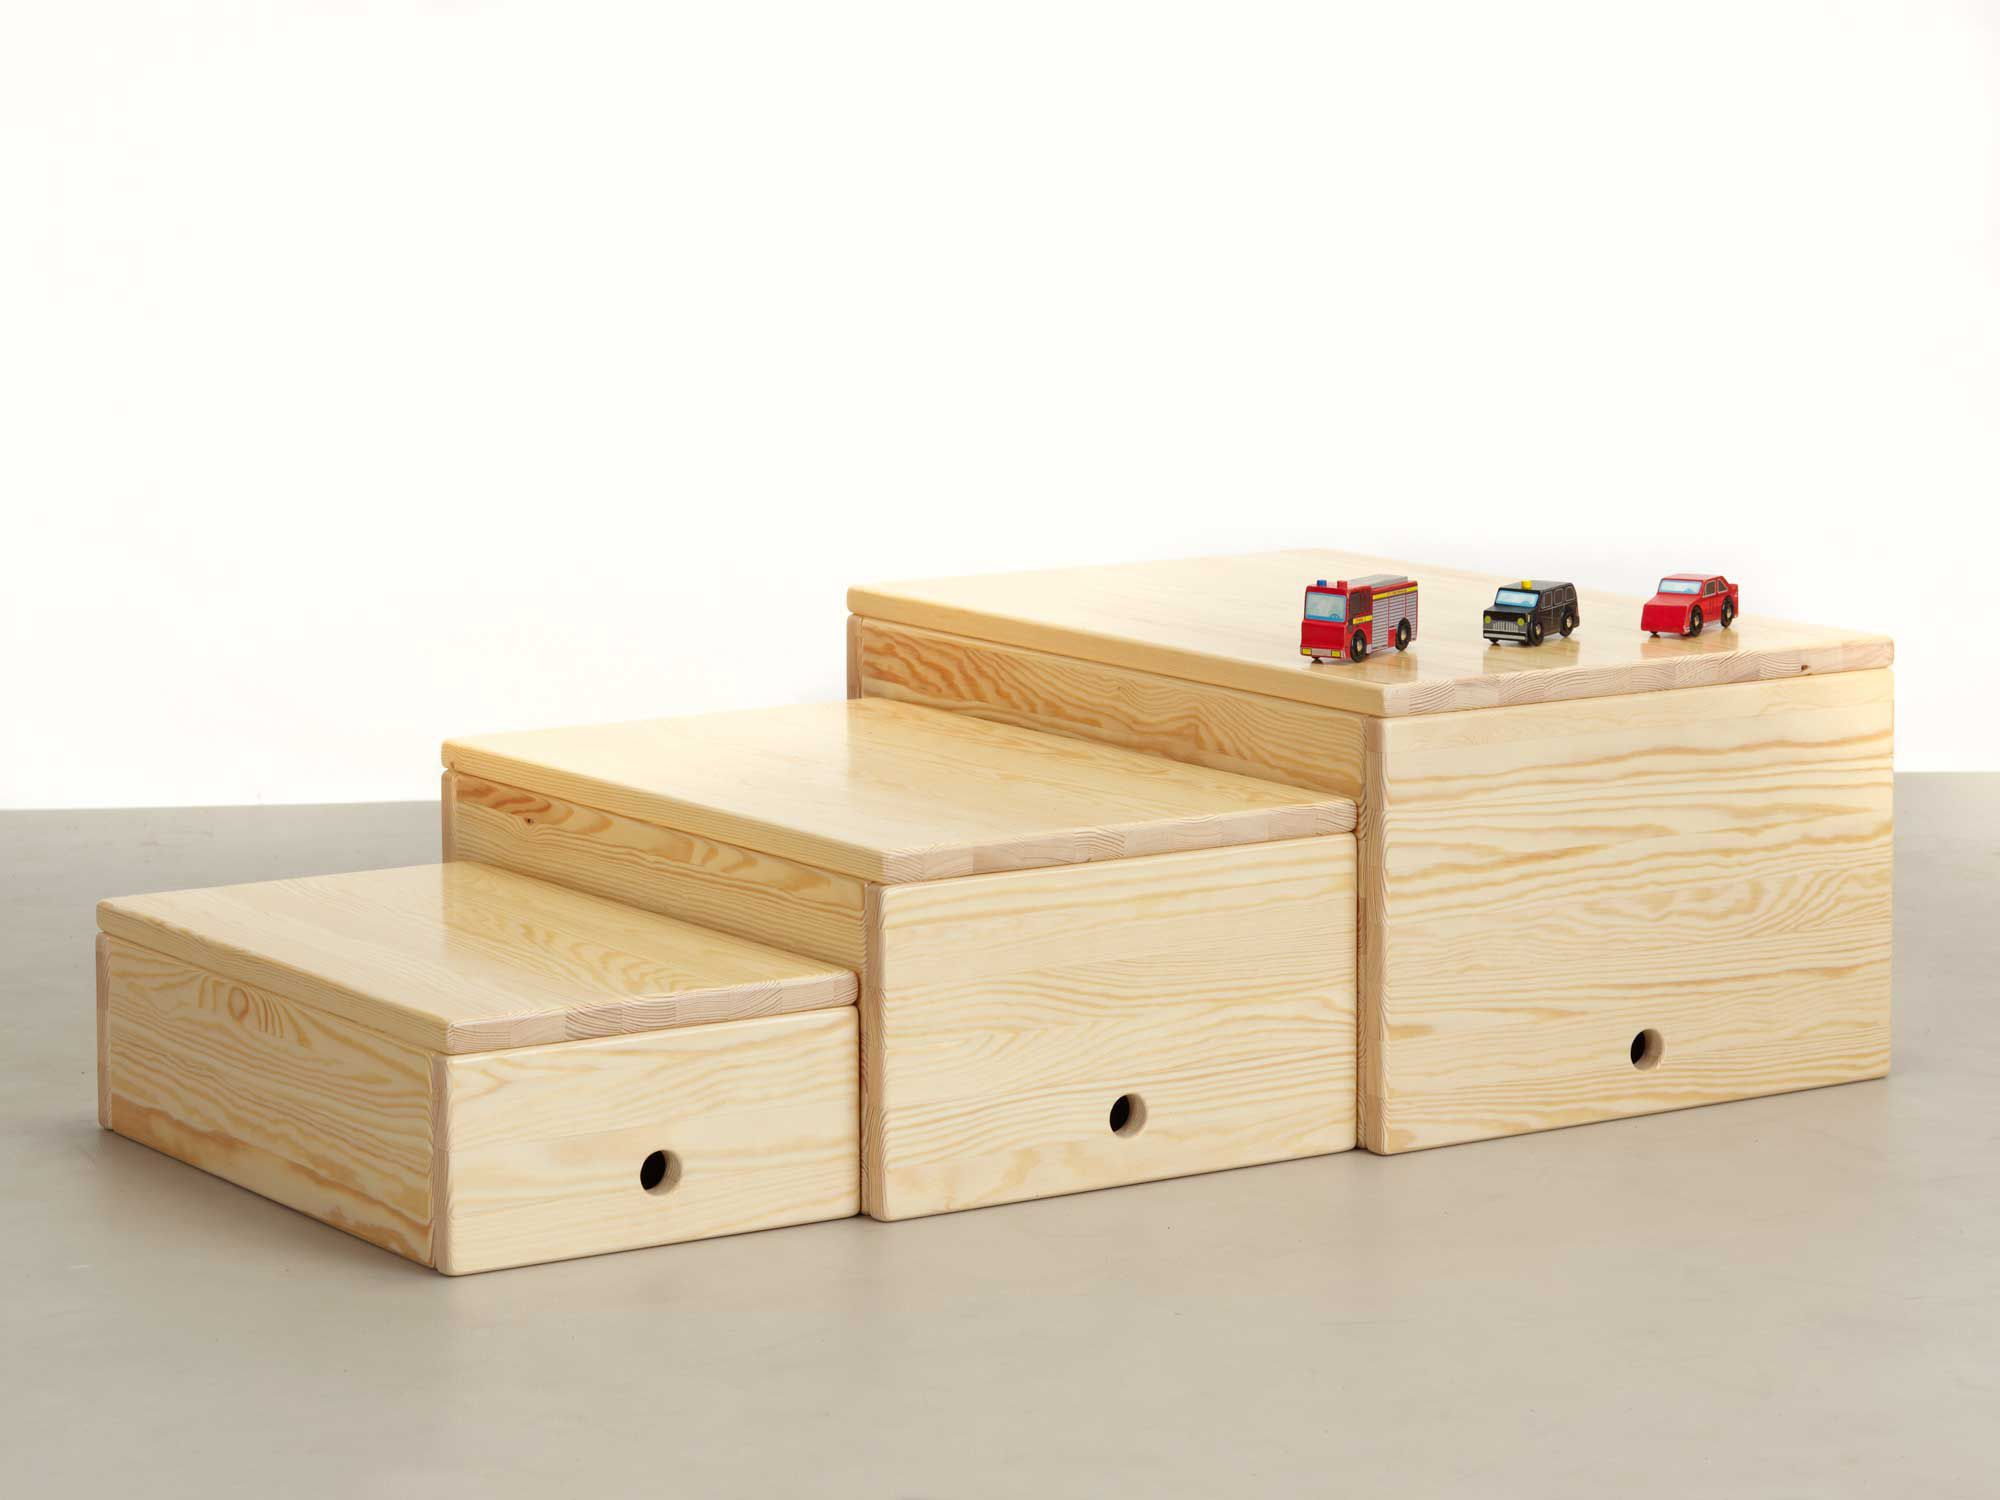 Fullsize Of Wooden Toy Box